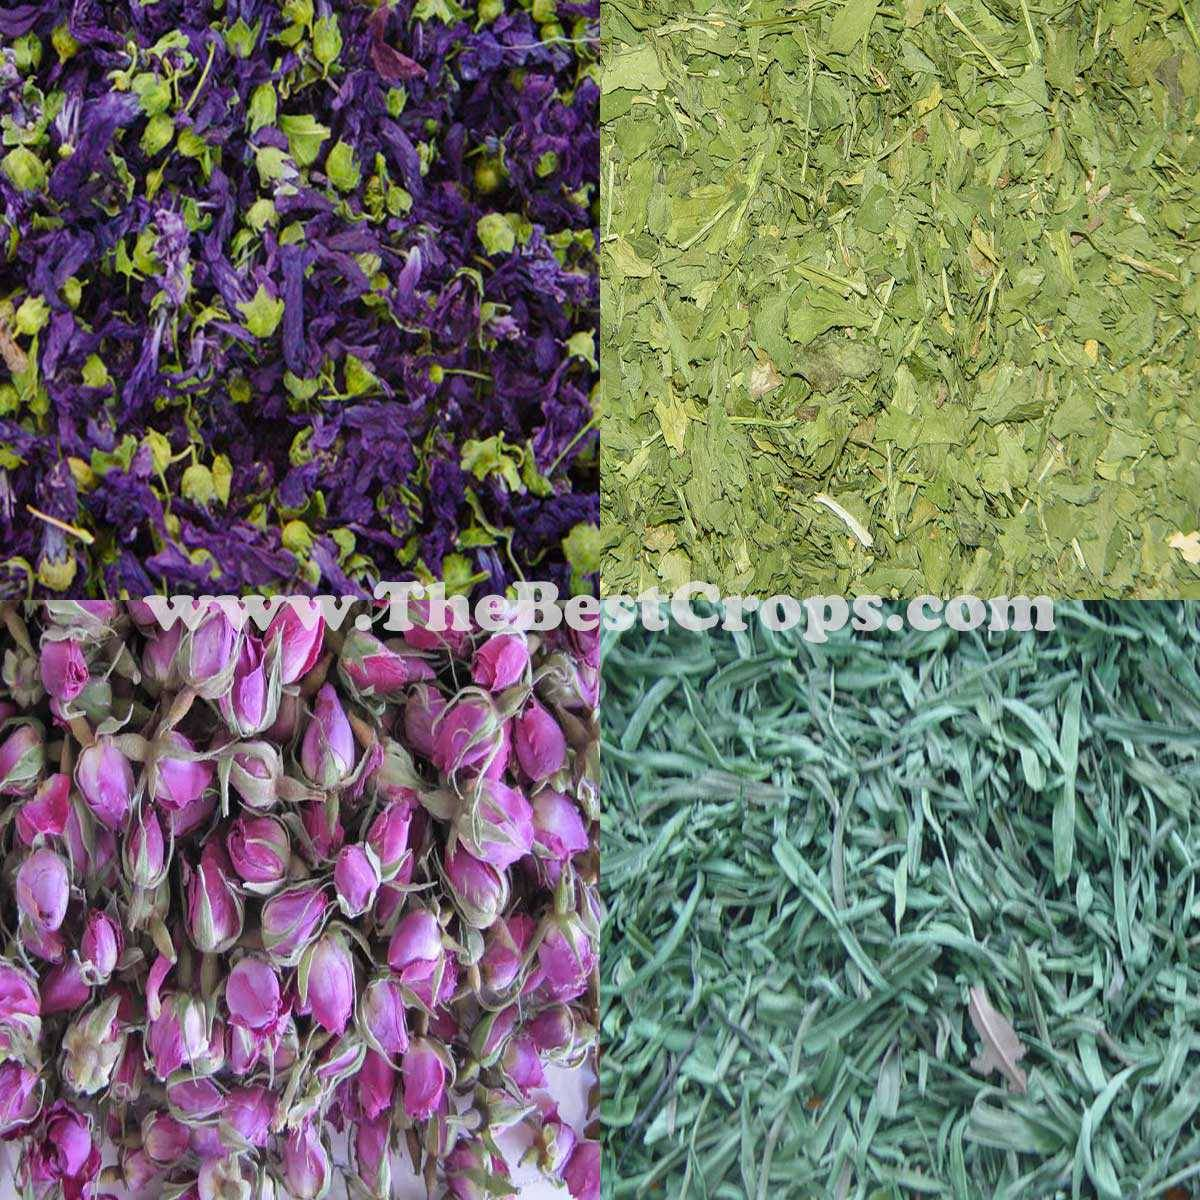 Iranian Herbal Tea, Top Quality (dried flowers, leaves, vegetables)